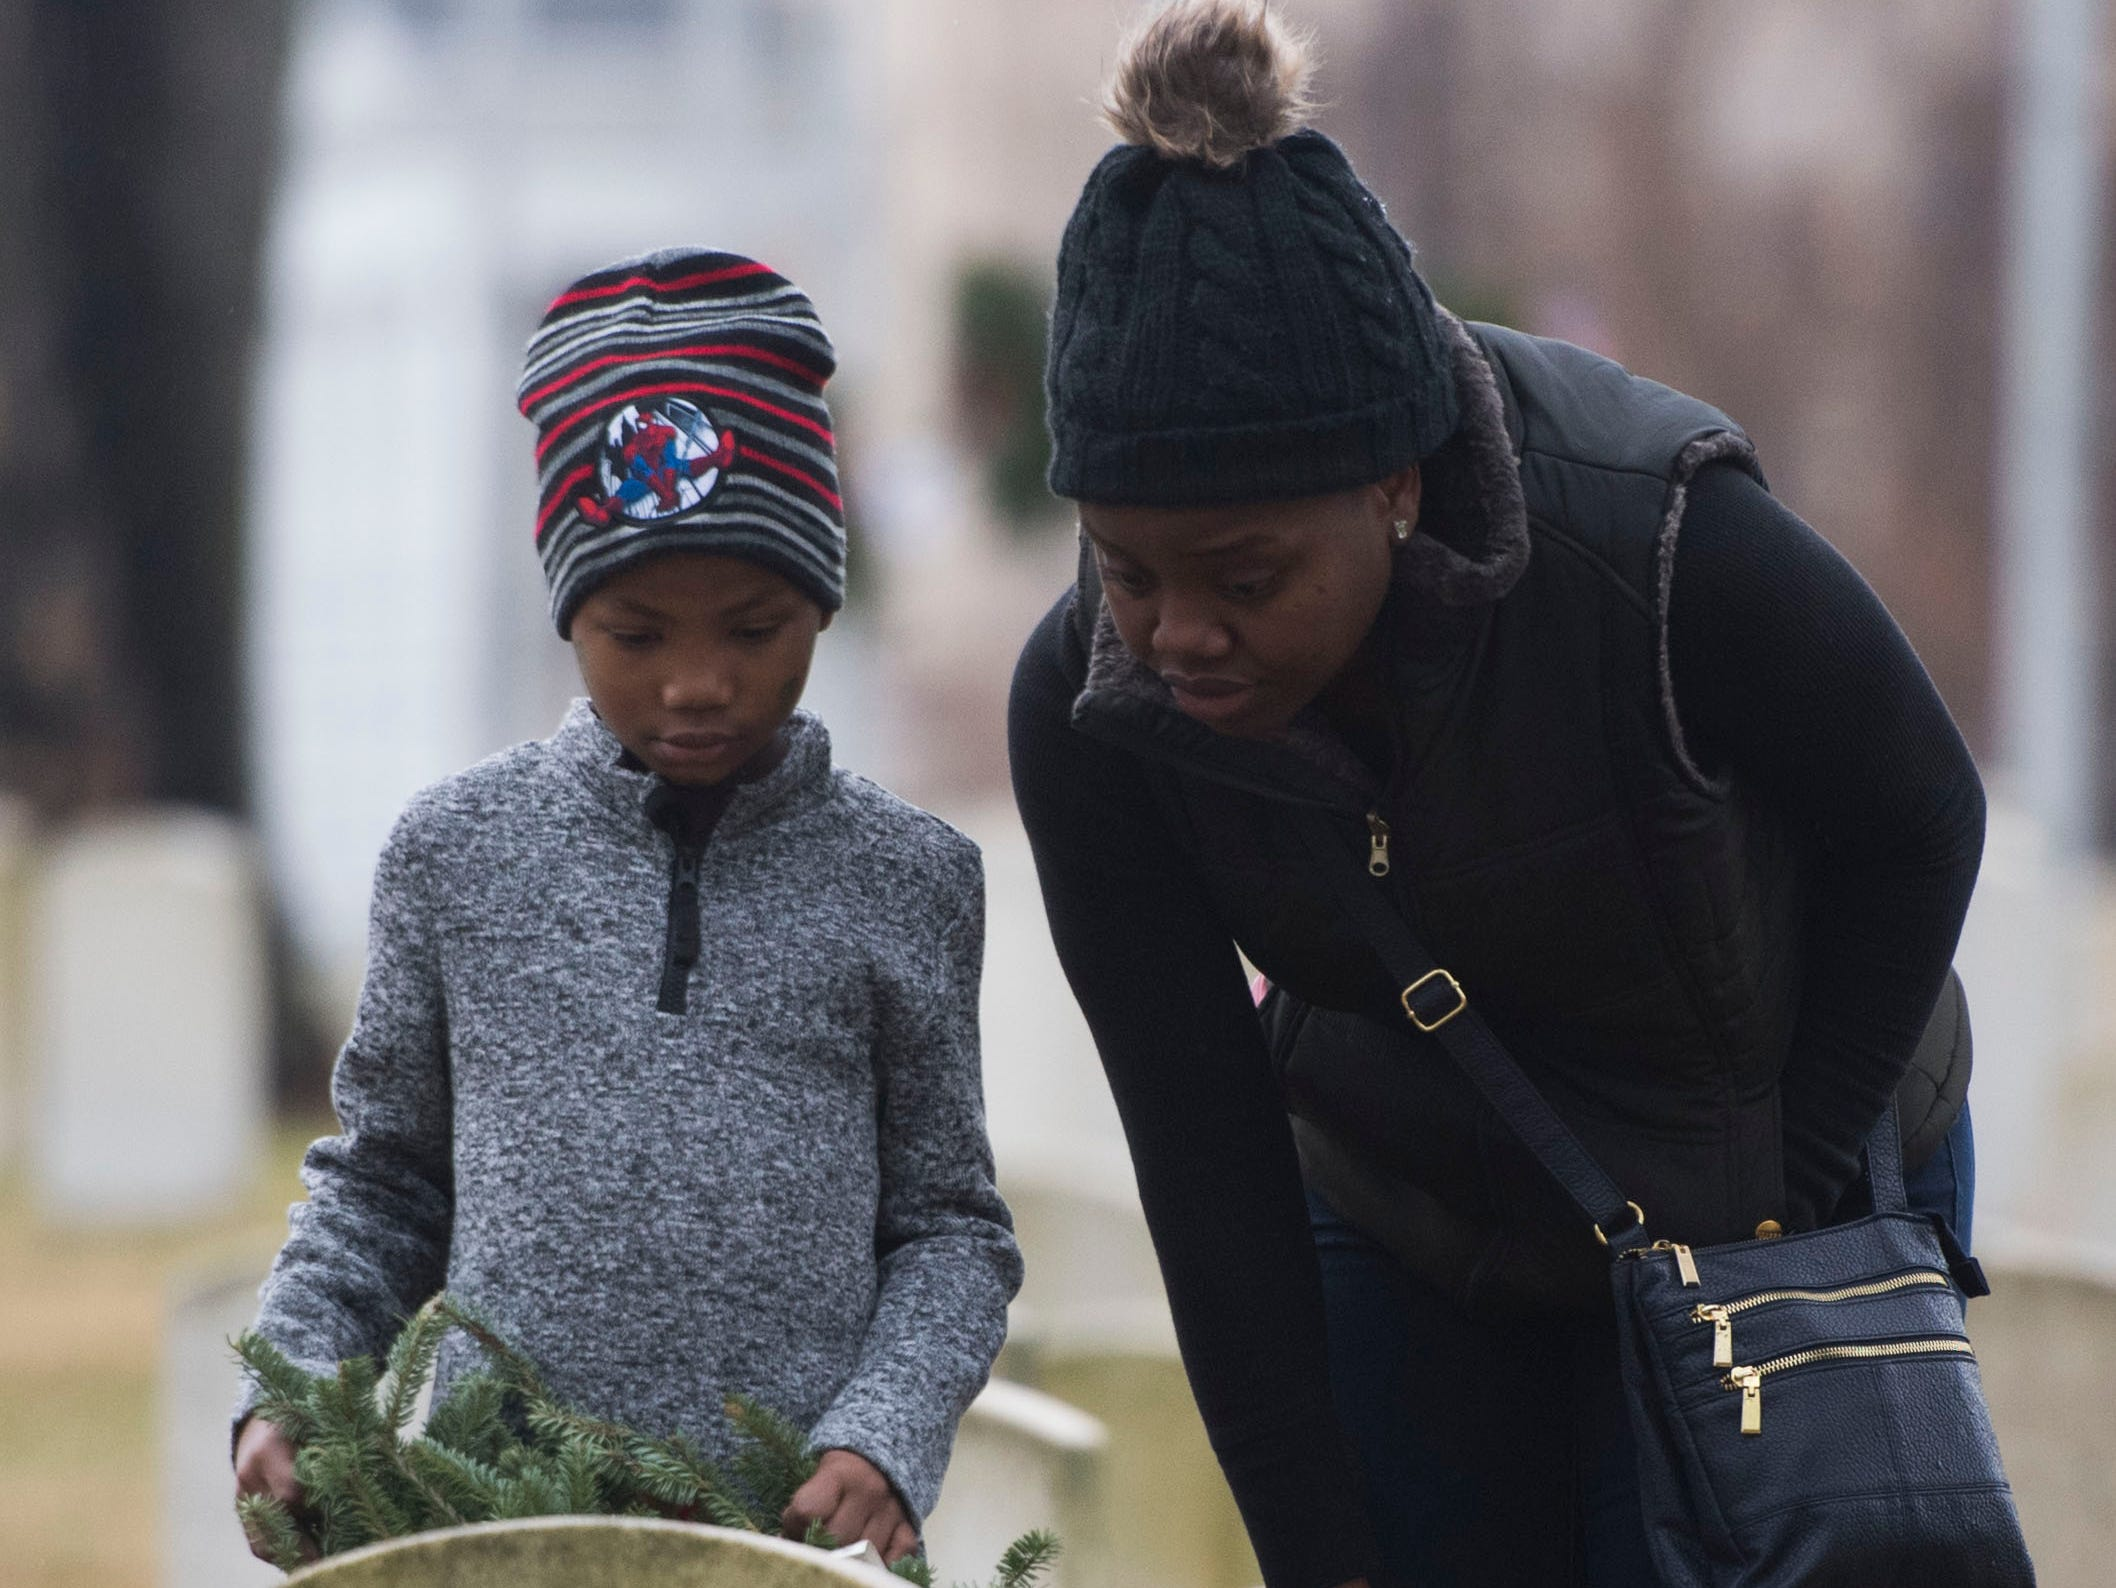 Lordensky, 8, and his mother Melissa Fifi, of Knoxville, place a wreath on a headstone during a Wreaths Across America ceremony at Knoxville National Cemetery north of downtown Knoxville Saturday, Dec. 15, 2018.